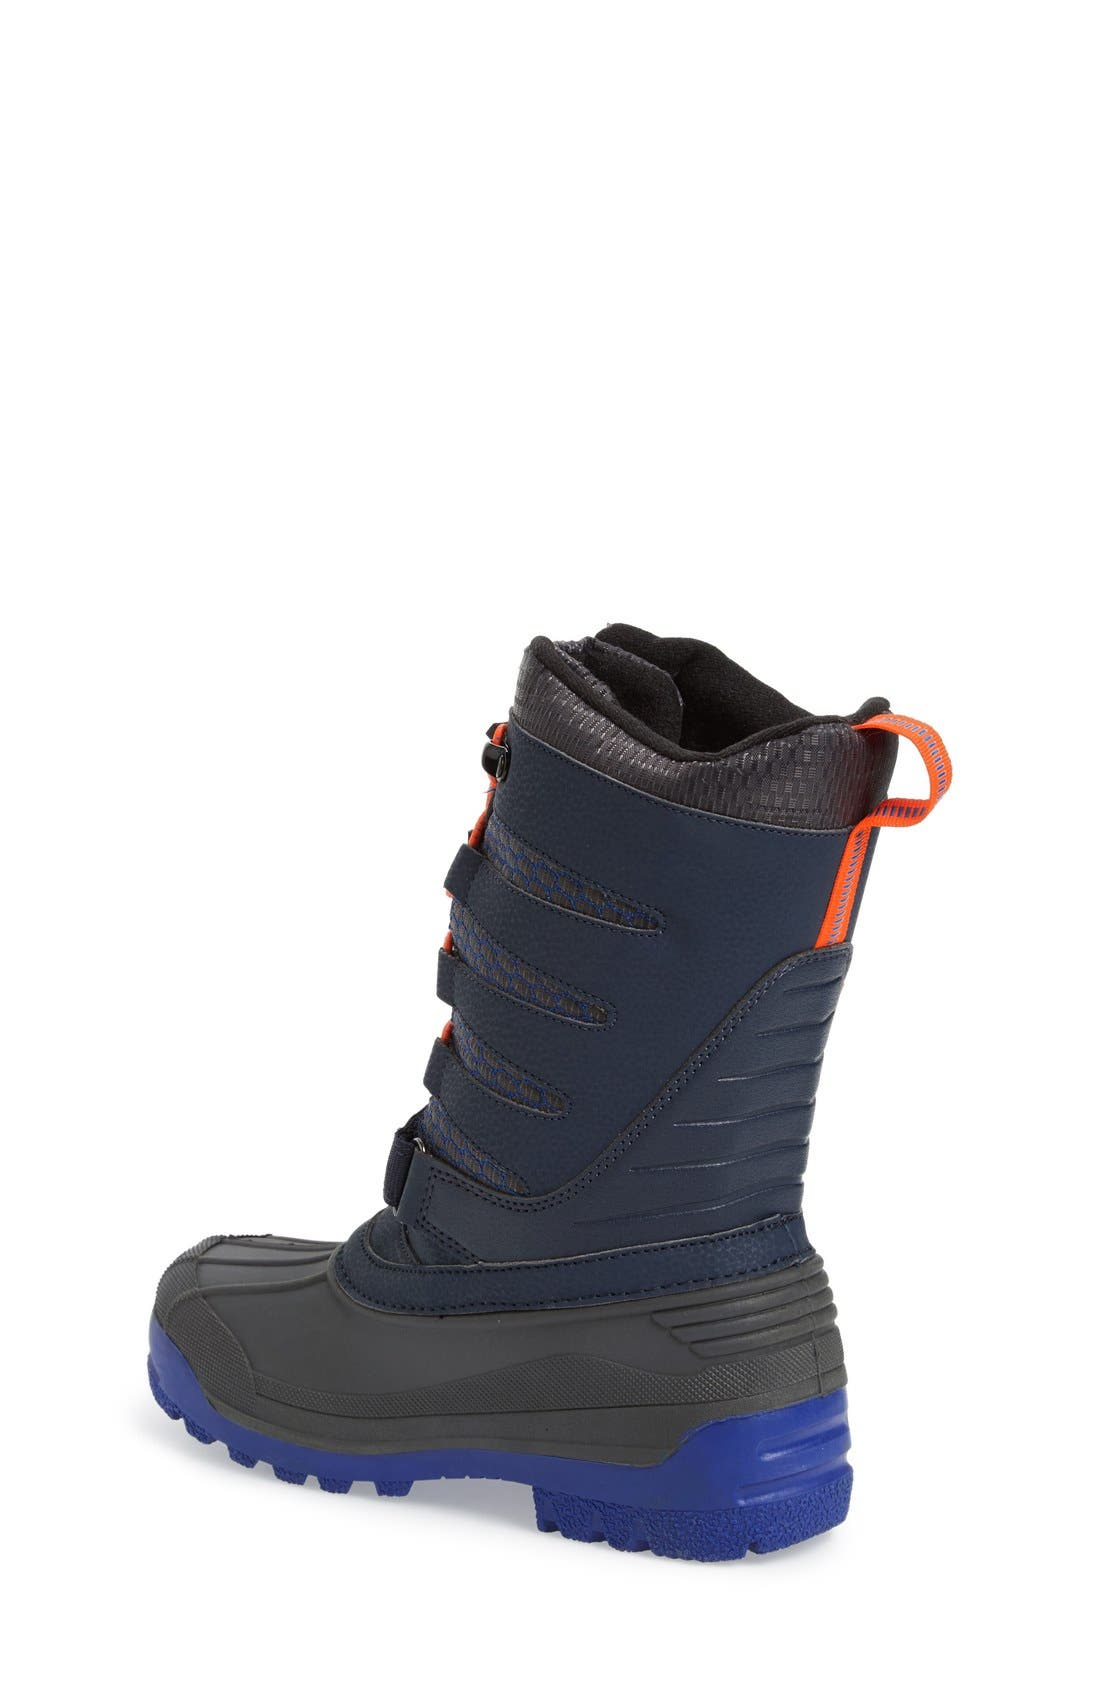 'Venom' Waterproof Insulated Snow Boot,                             Alternate thumbnail 2, color,                             Navy/ Orange